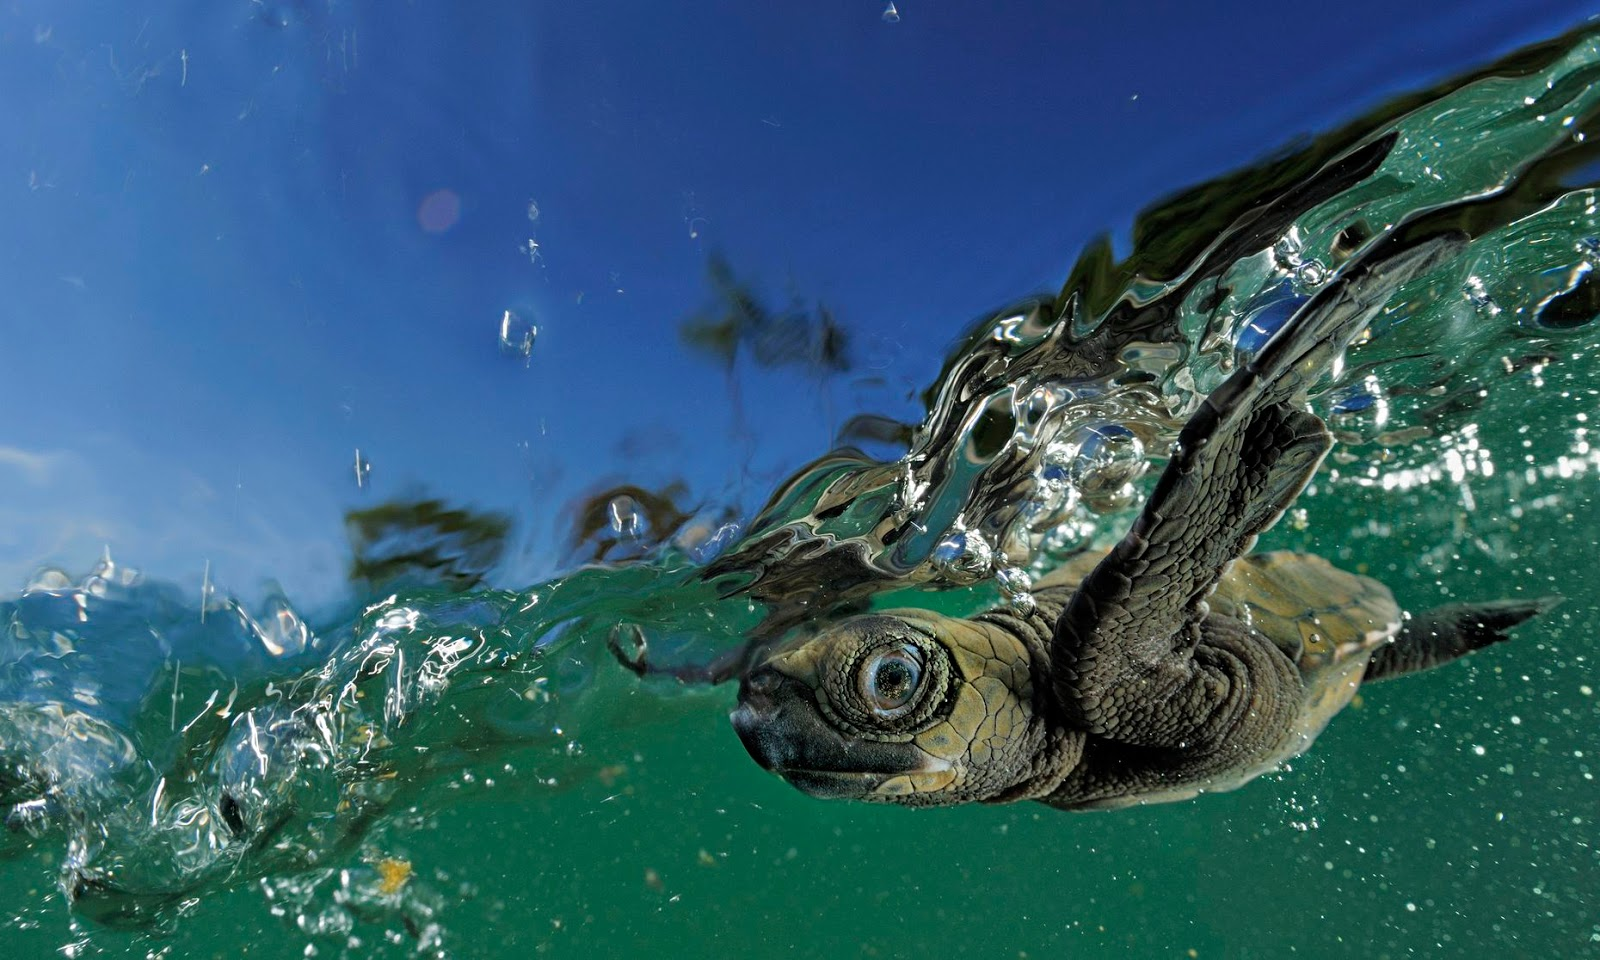 http://www.theguardian.com/technology/2014/may/09/olive-ridley-turtle-swim-start-life-ganjam-beaches-india